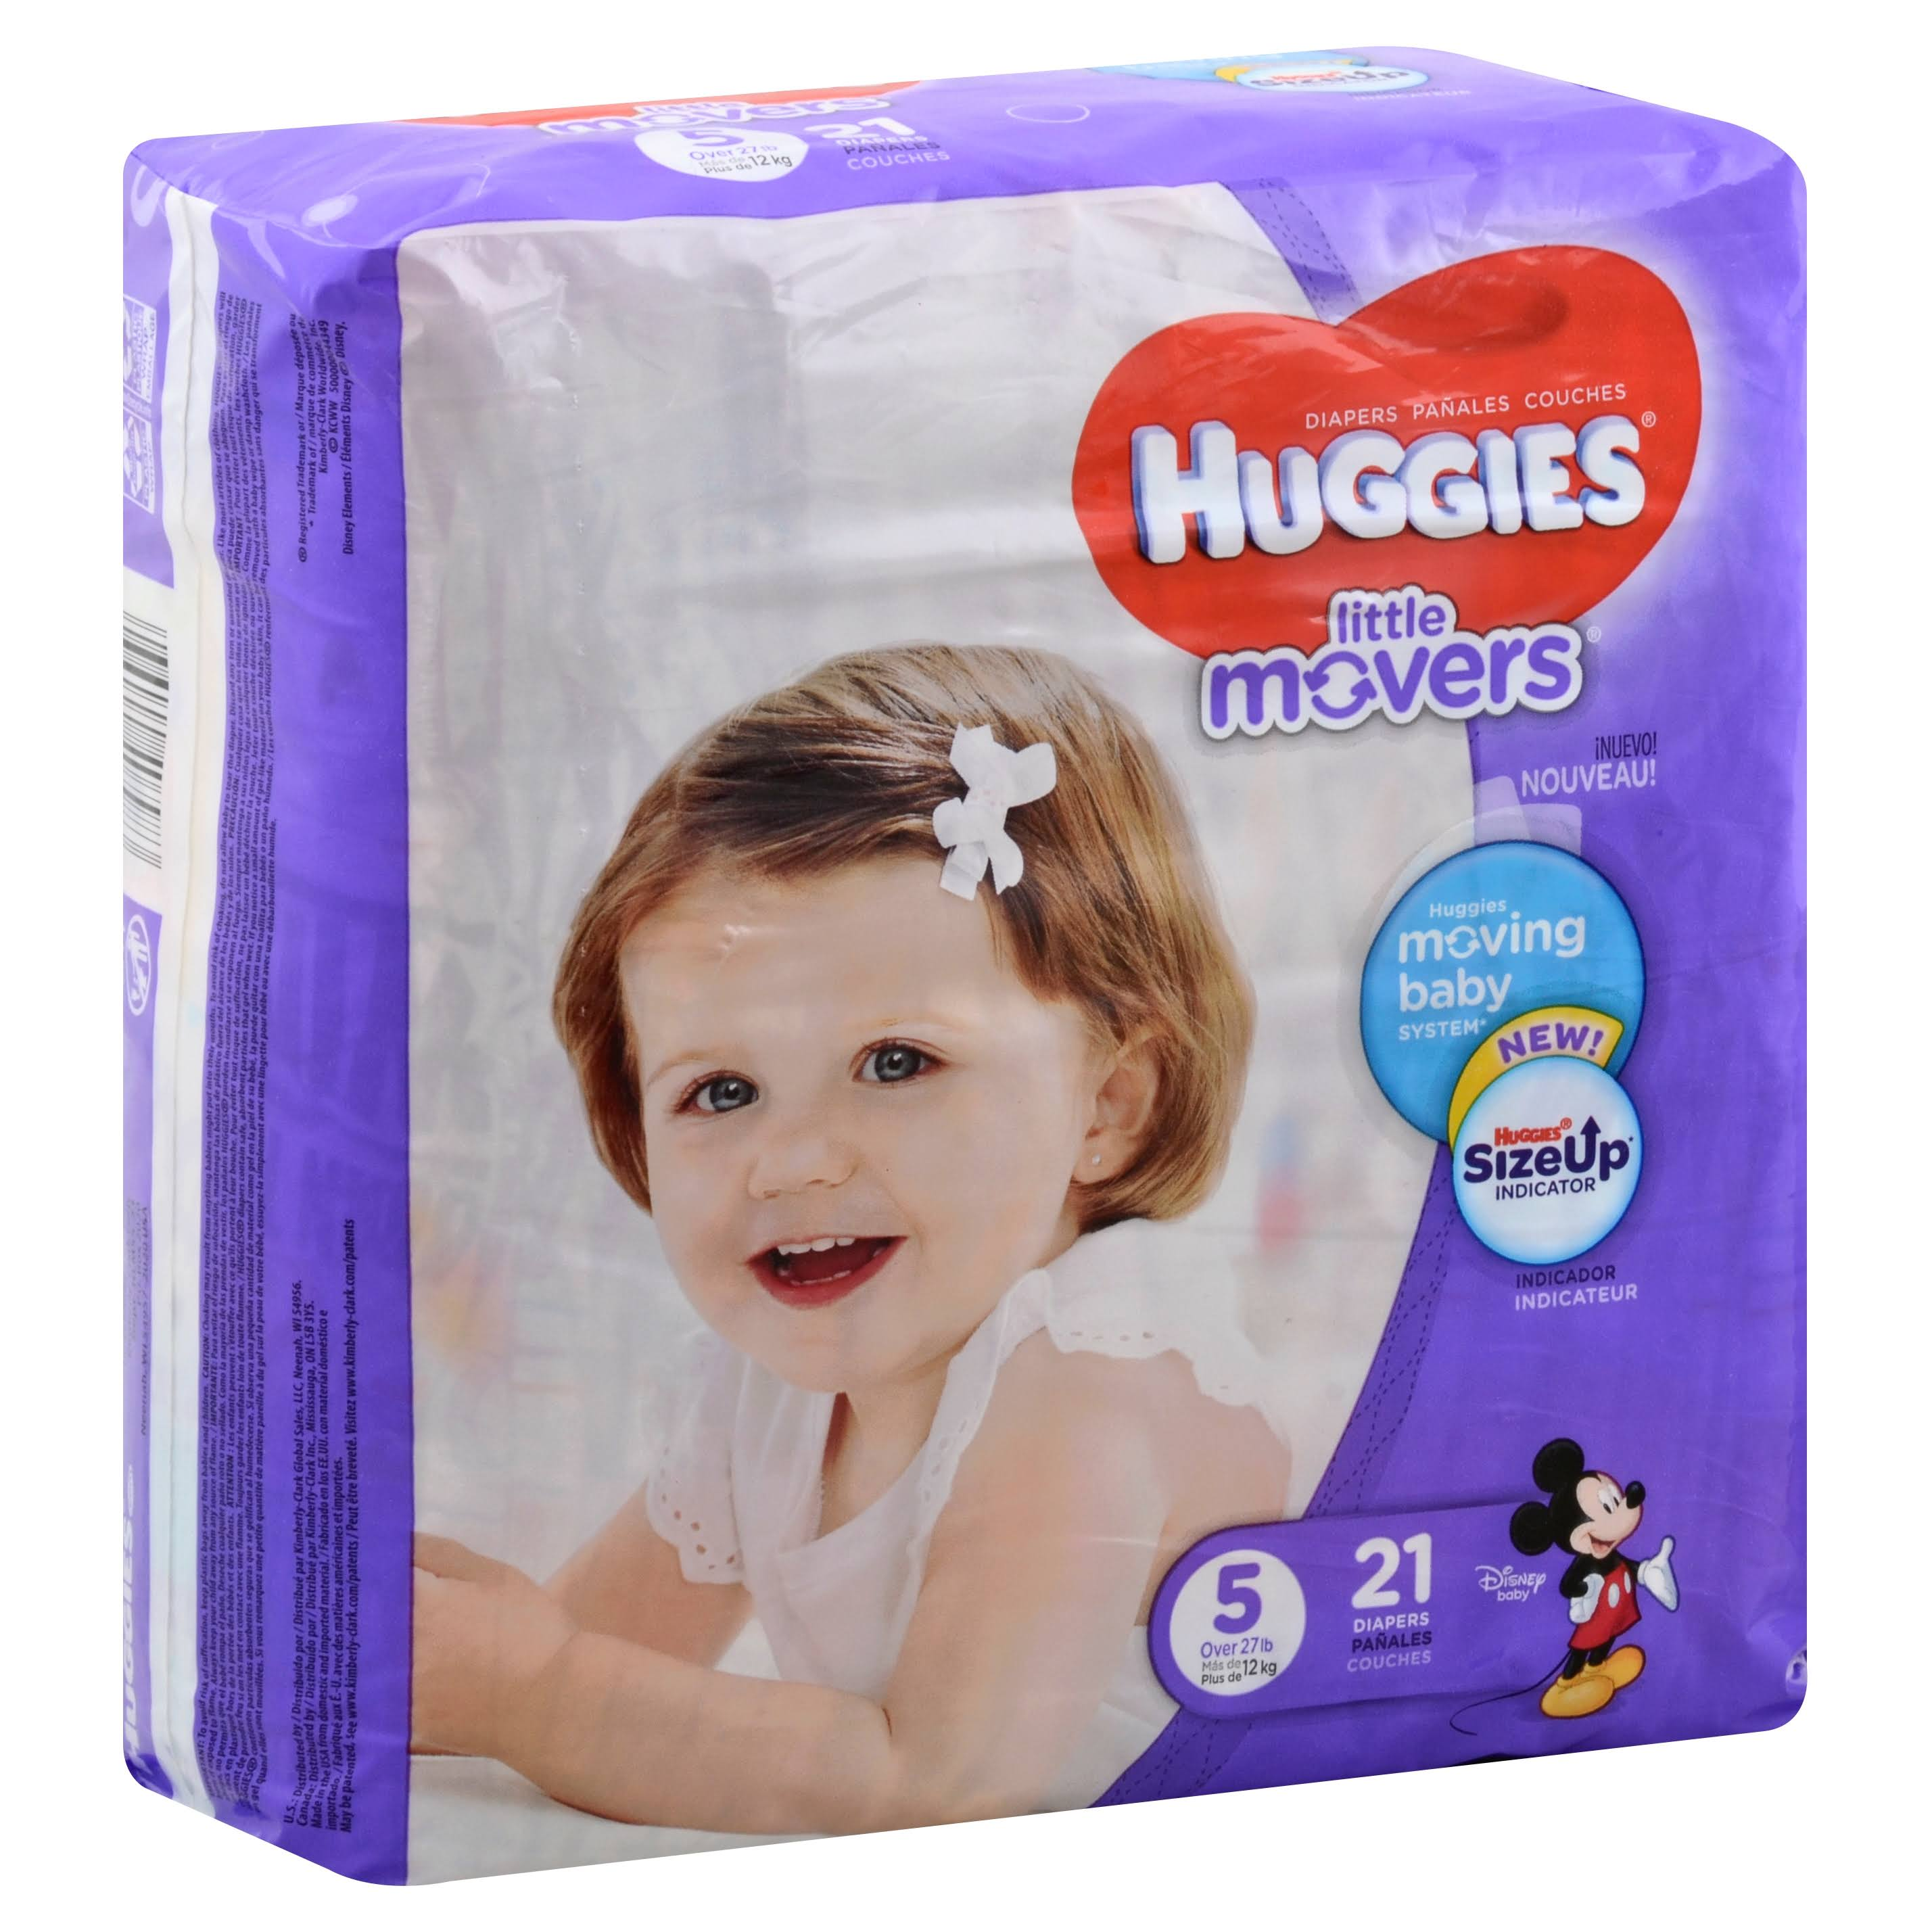 Huggies Little Movers Diapers - 5 Over 27lb, 21pk